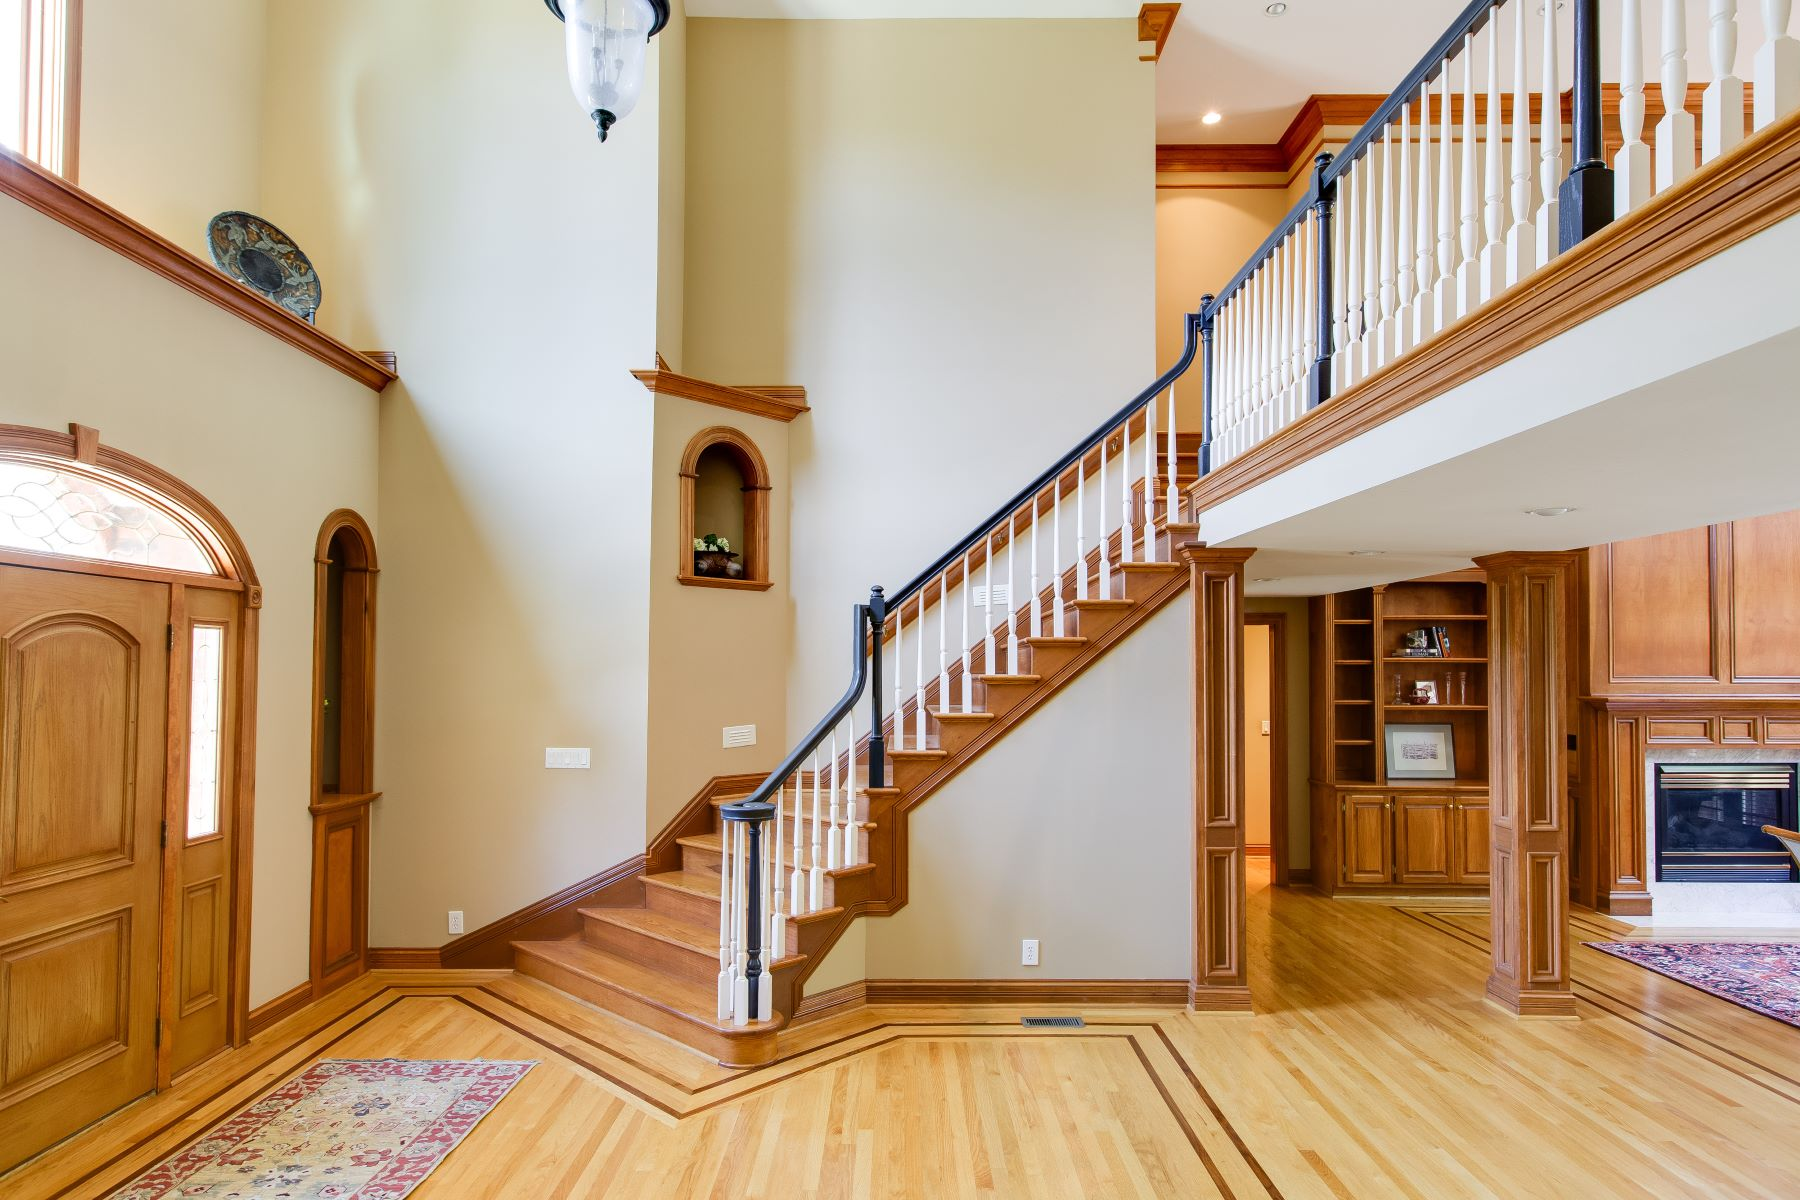 Additional photo for property listing at 1014 Anchorage Woods Circle  Anchorage, Kentucky 40223 United States